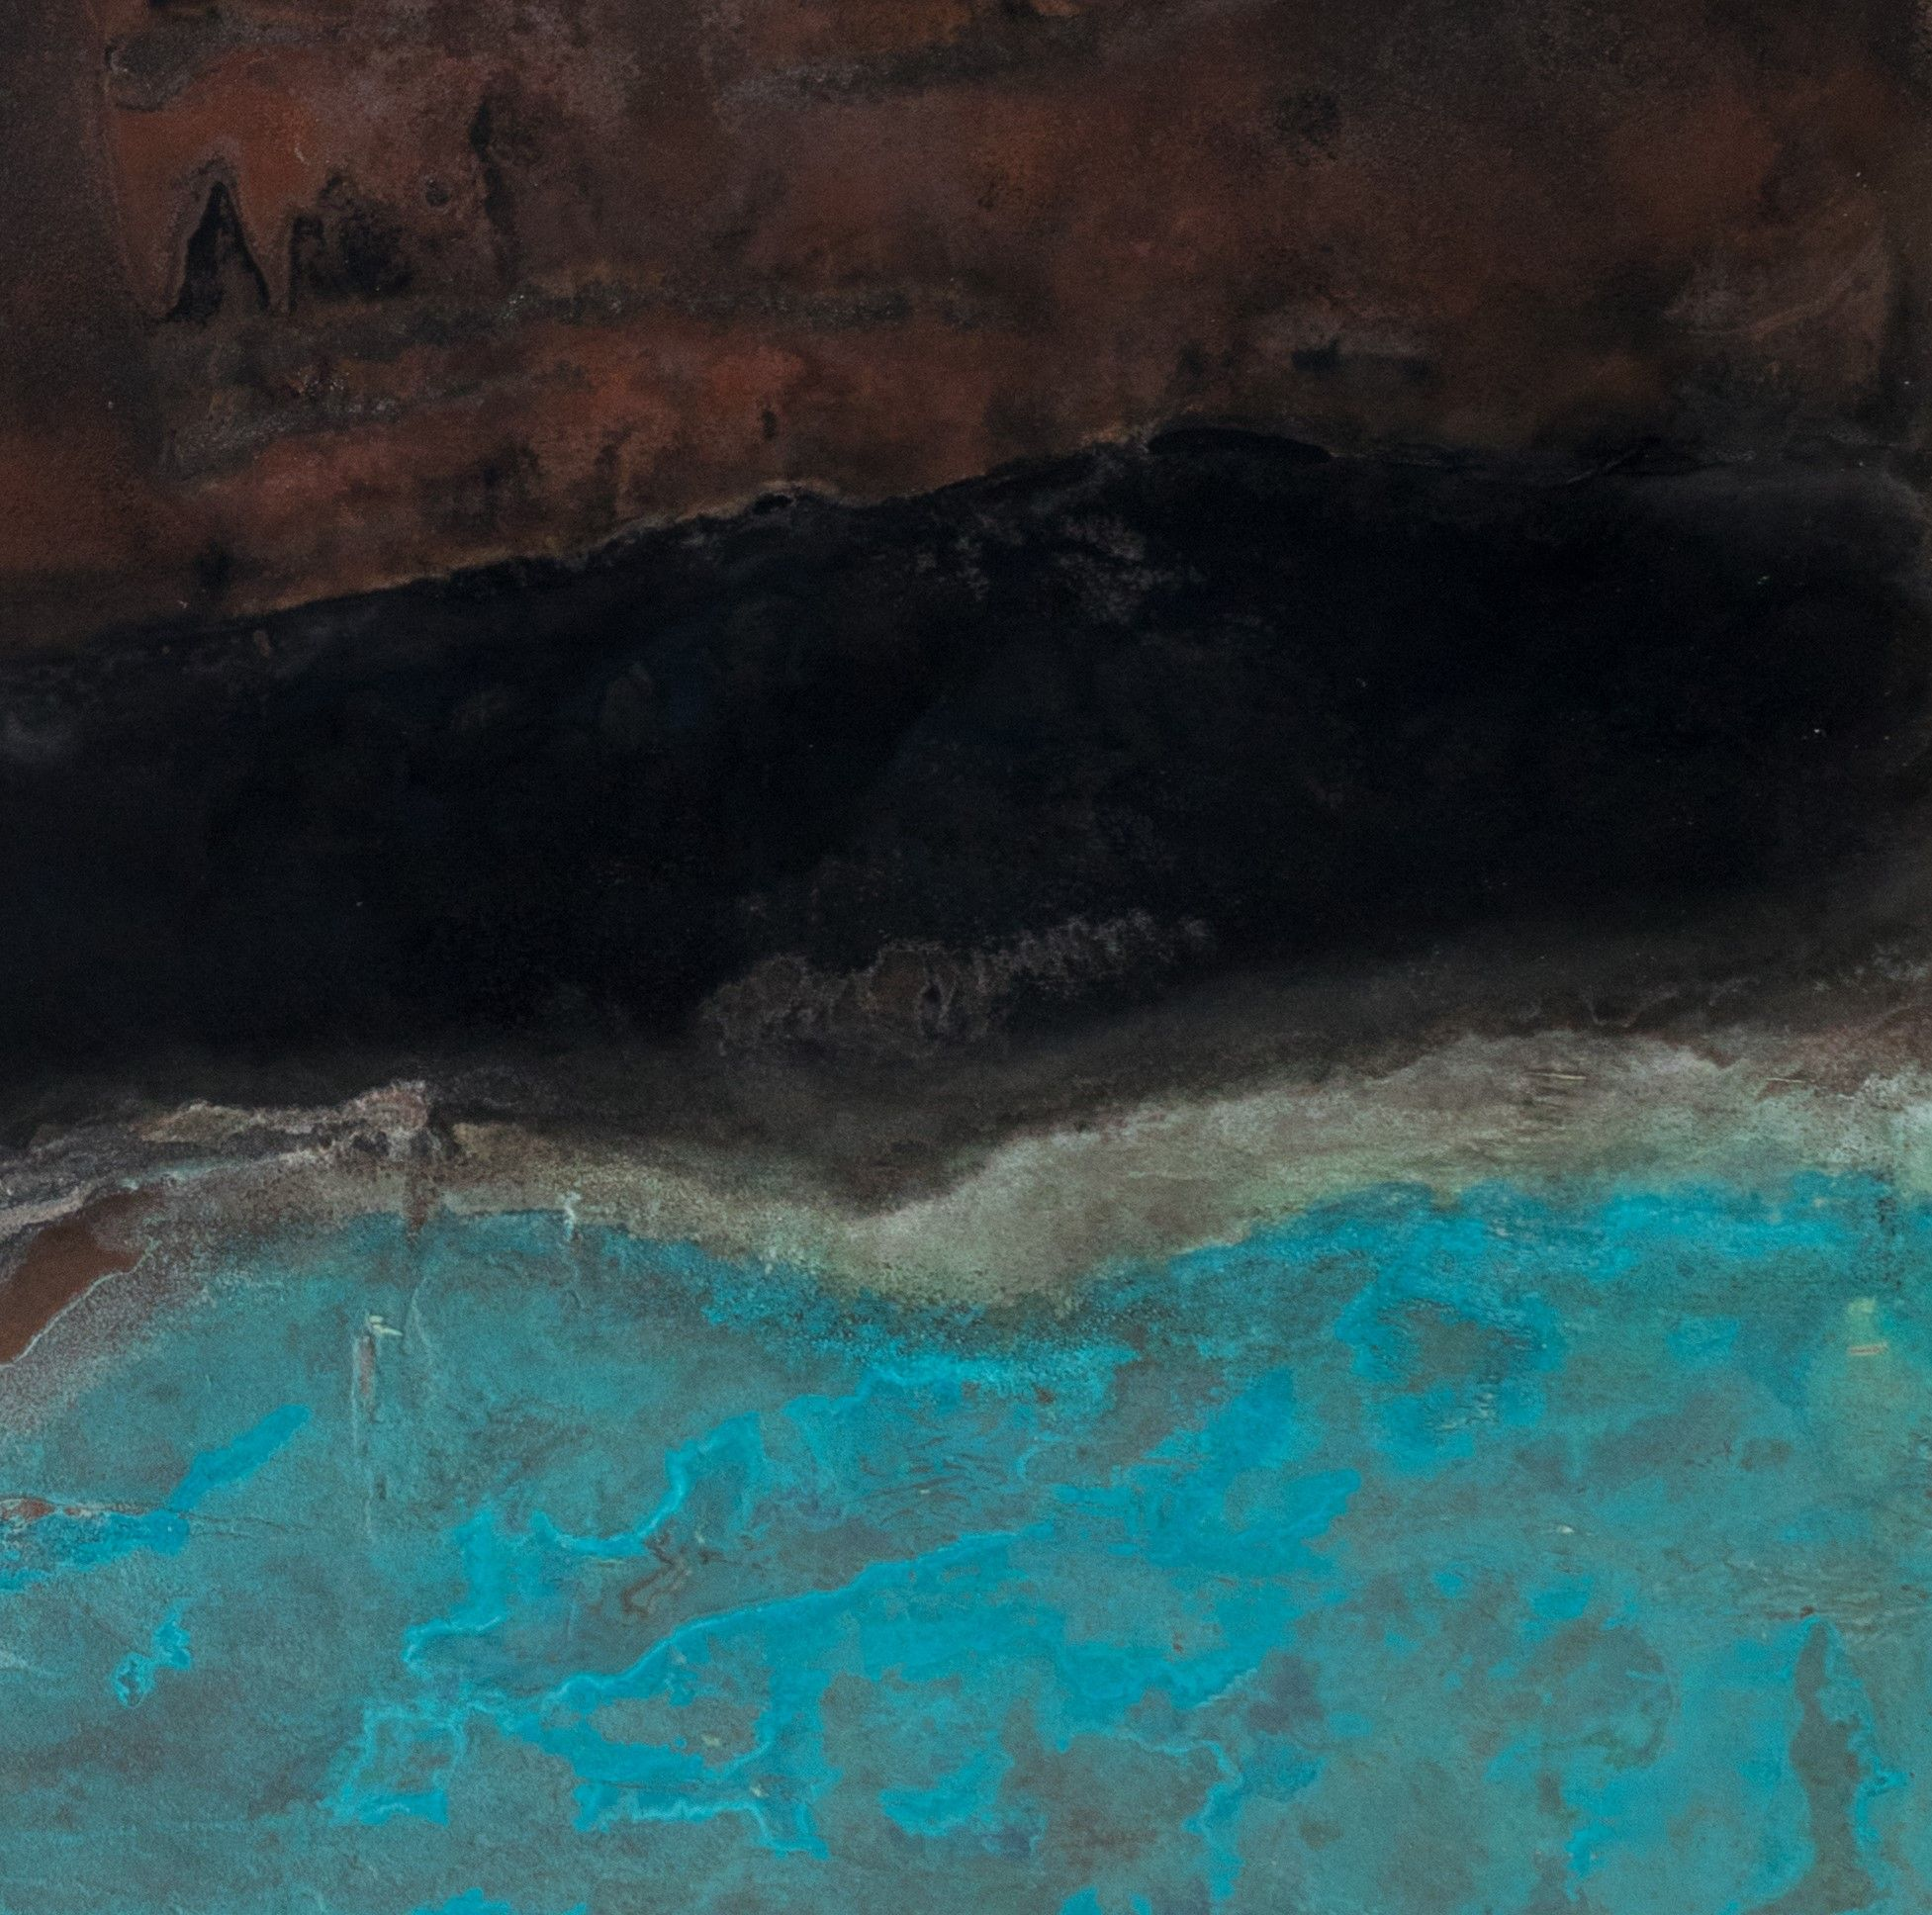 Sans titre XIX-X, Small size series,Frédérique Domergue,Contemporary painting, detail 2